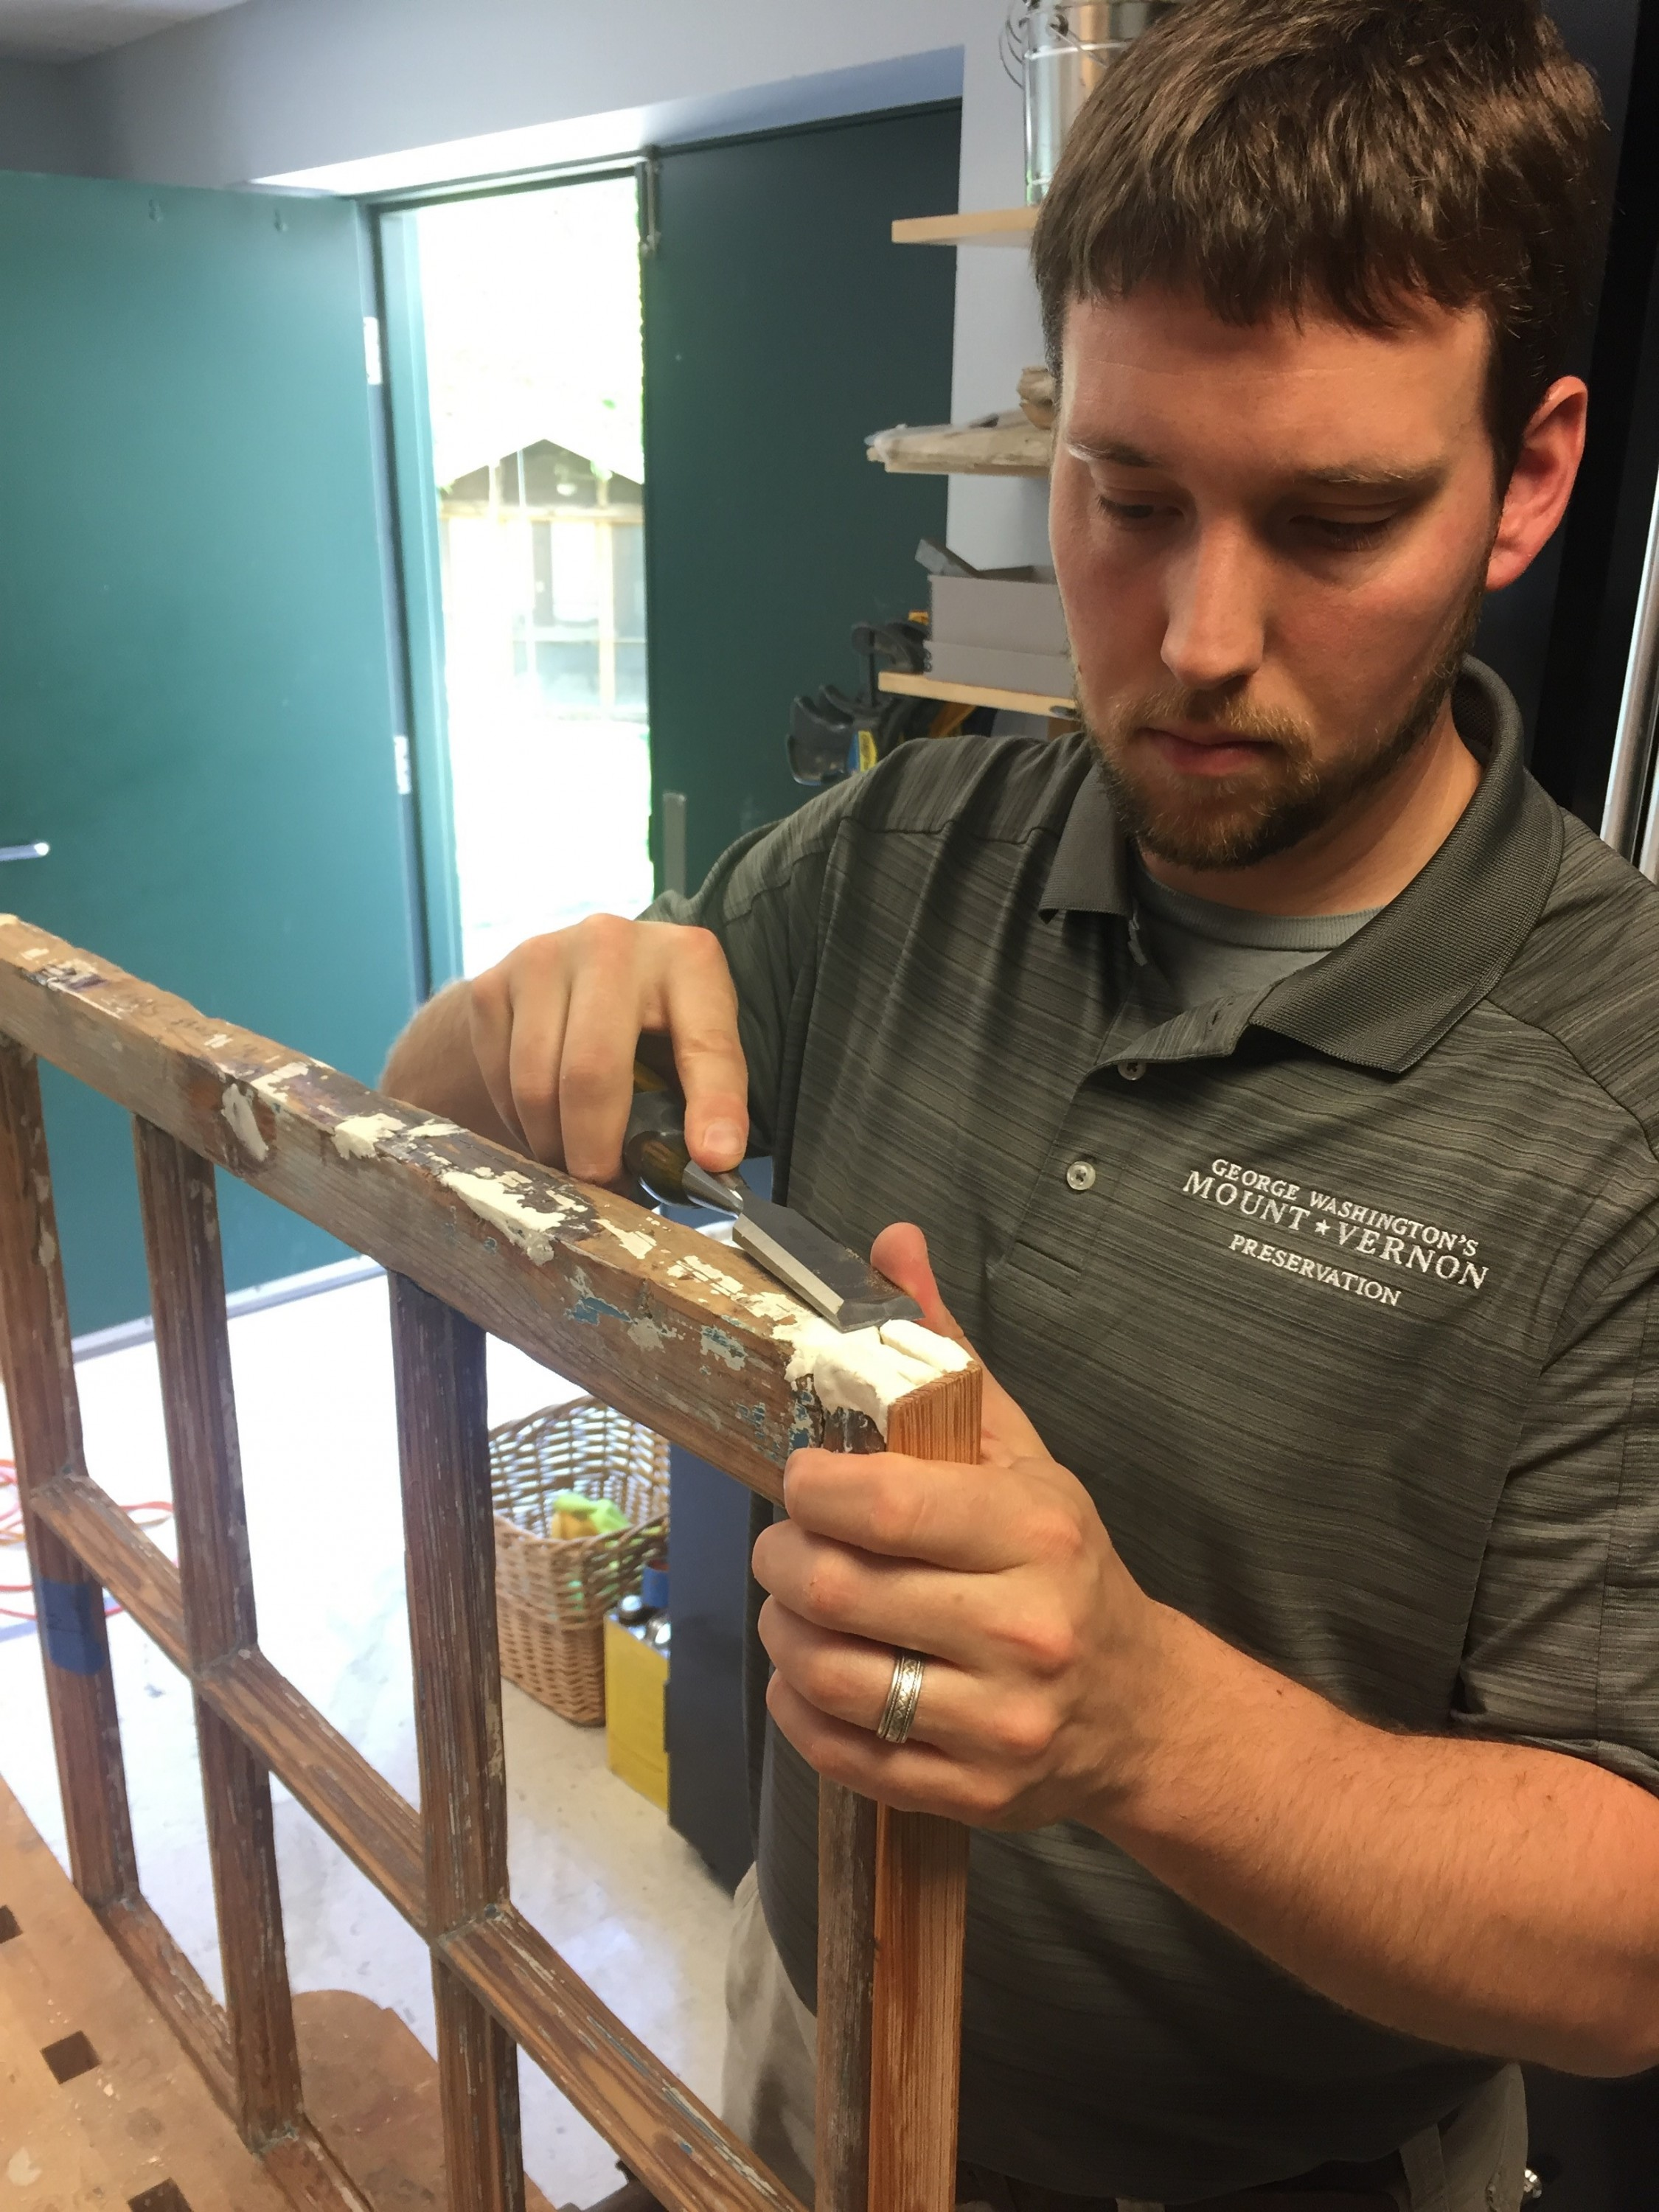 Architectural Conservator, Steve Stuckey, shaping an epoxy repair to match the dimensions of the sash frame with a chisel.